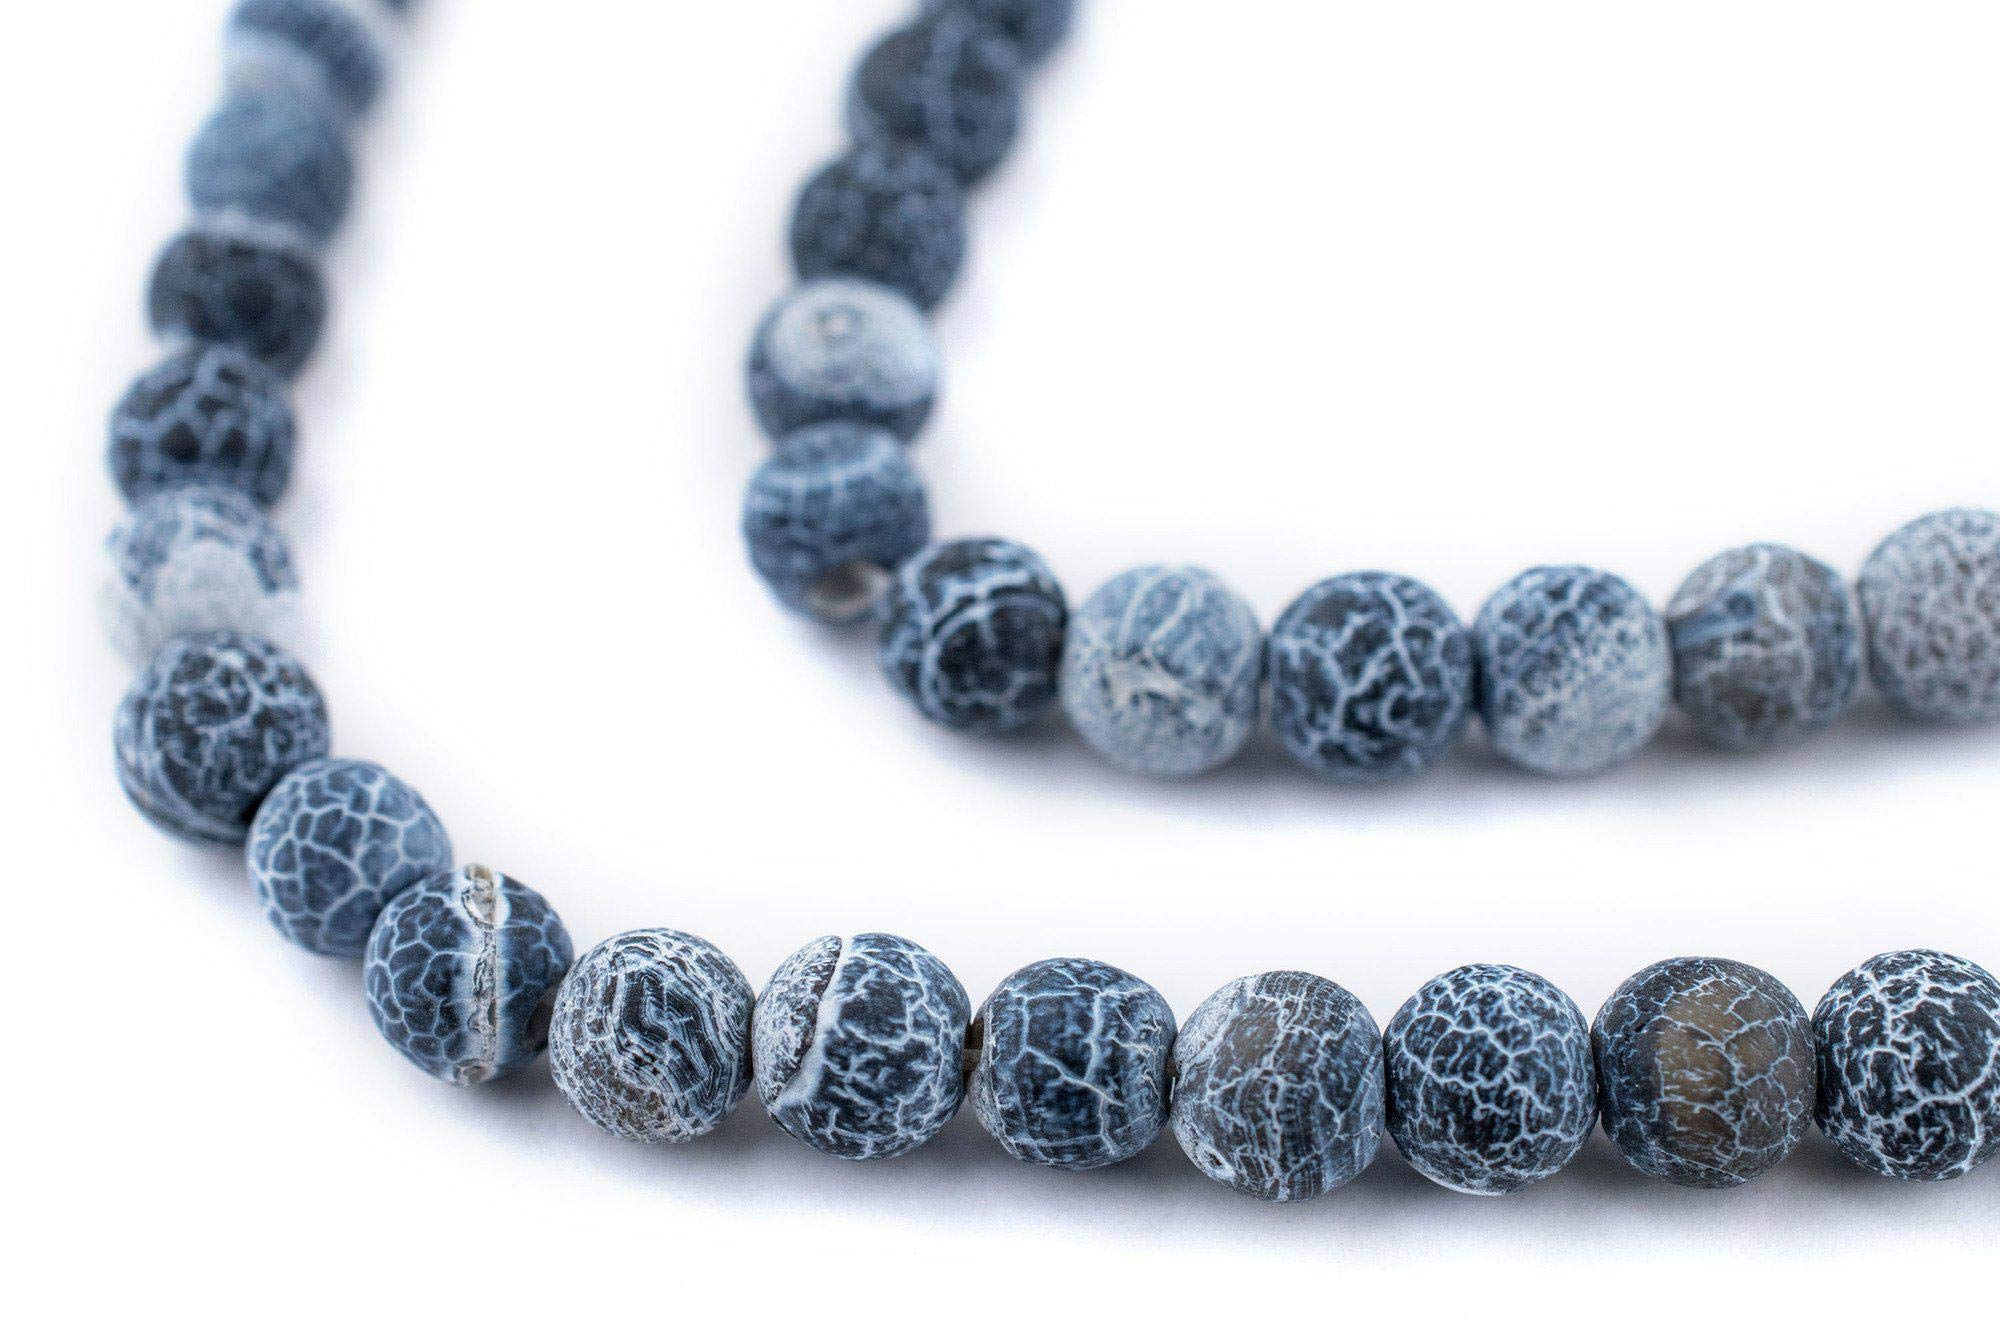 TheBeadChest Matte Round Black Crackled Agate Beads (6mm): Organic Gemstone Round Spherical Energy Stone Healing Power for Jewelry Bracelet Mala Necklace Making